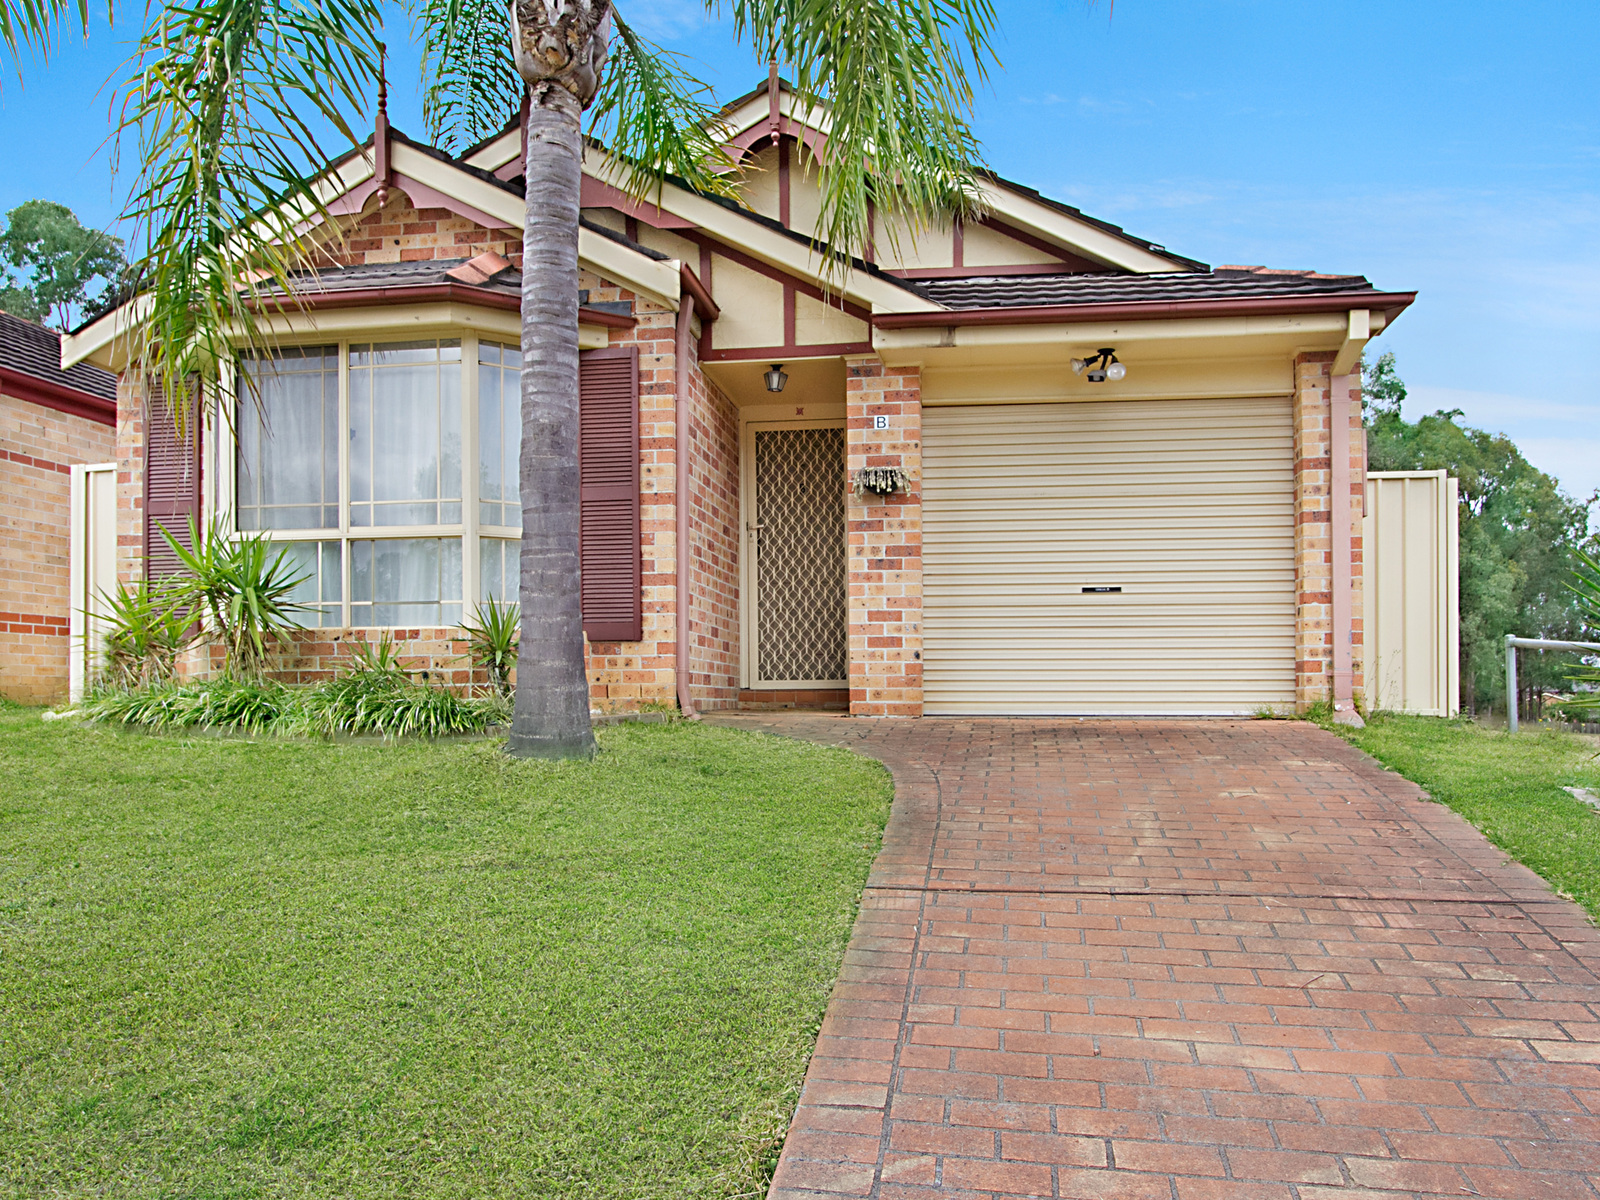 quakers hill real estate for sale